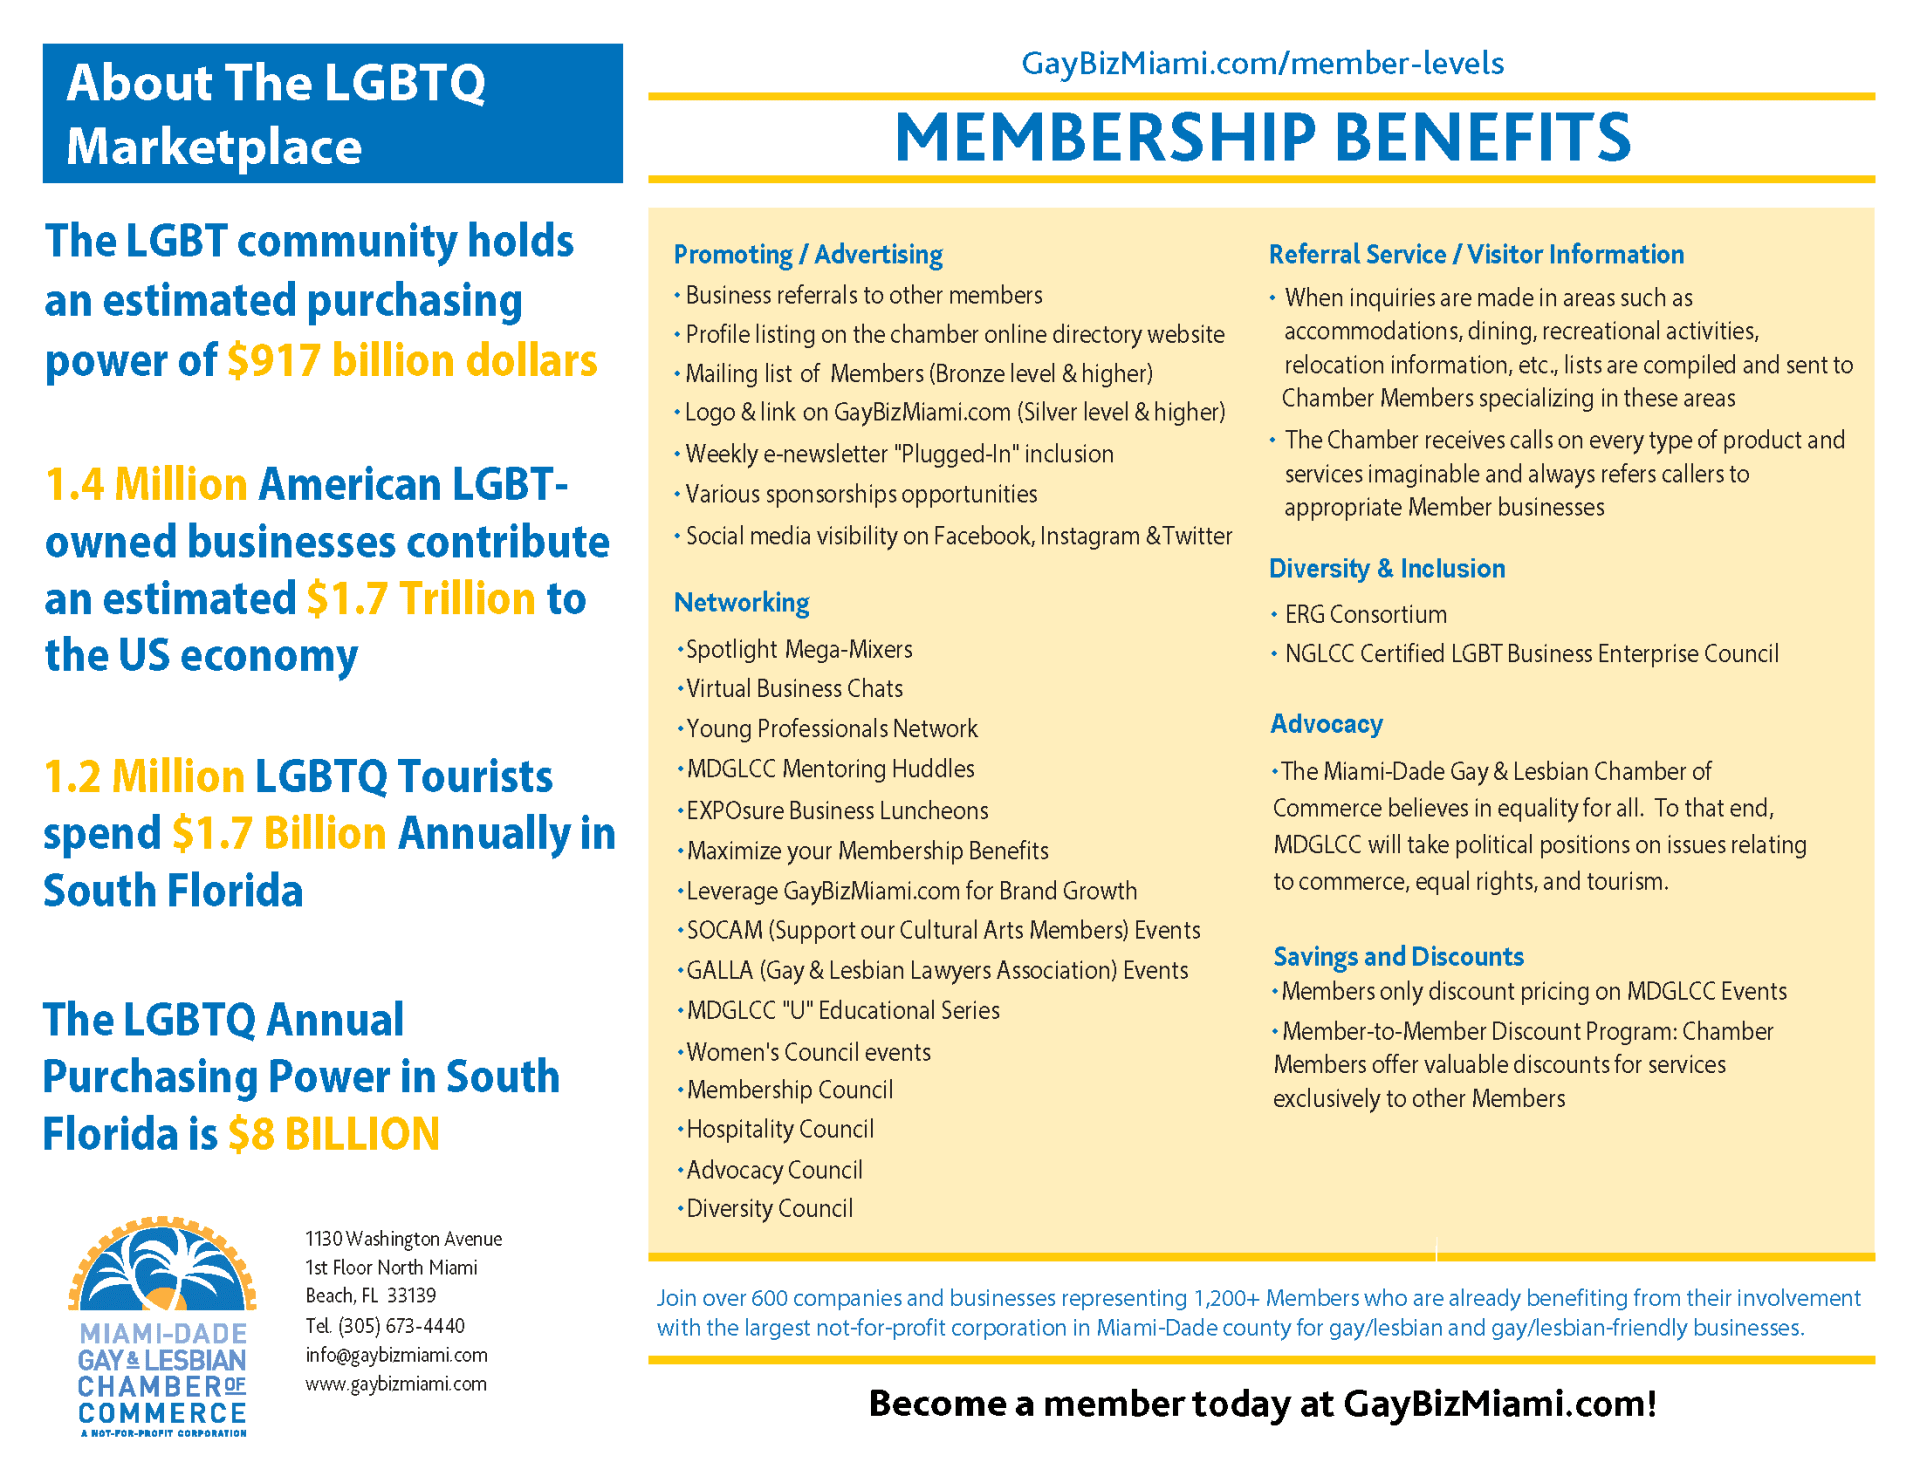 Member Levels and Pricing Page 2